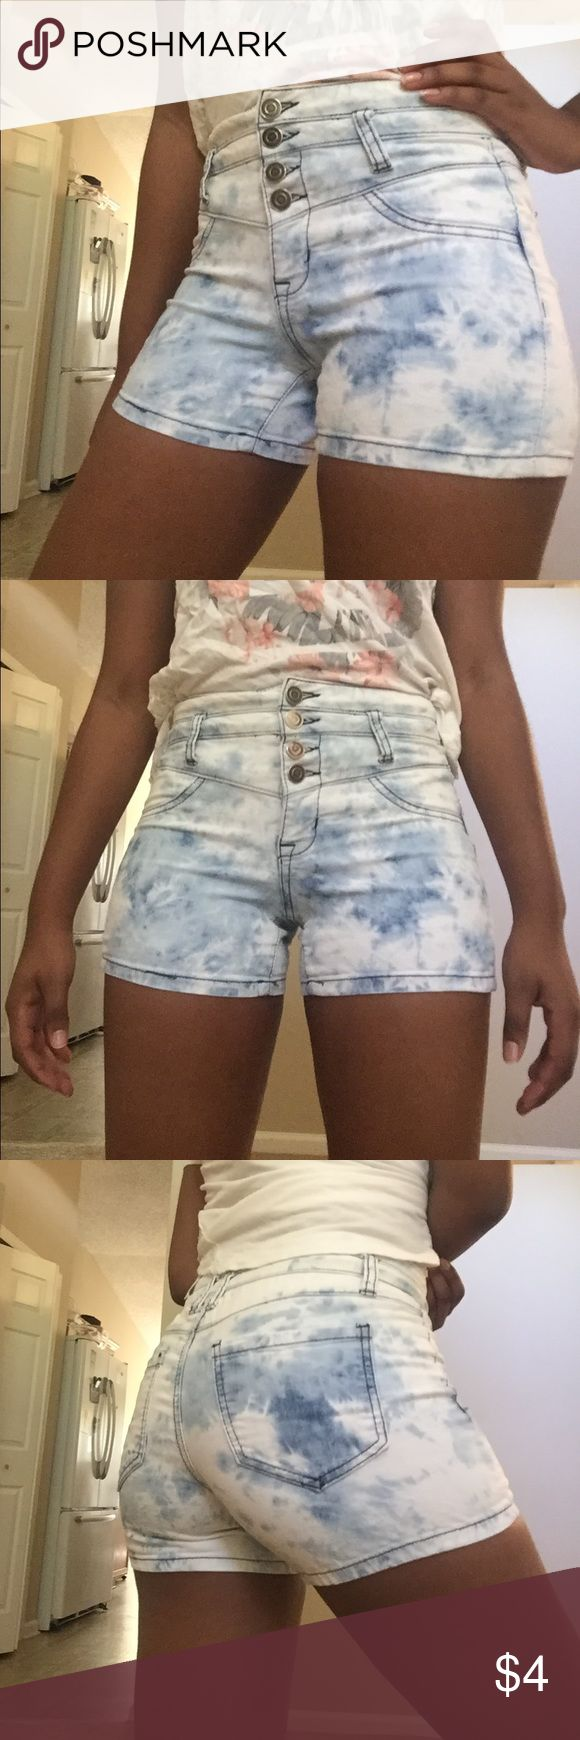 High Waisted Shorts 🌸🌞 Super Cute high waisted shorts from Body Central. Size is small. Pop your outfit with these adorable tye-dye wash shorts!! ❤️❤️🌸 Body Central Shorts